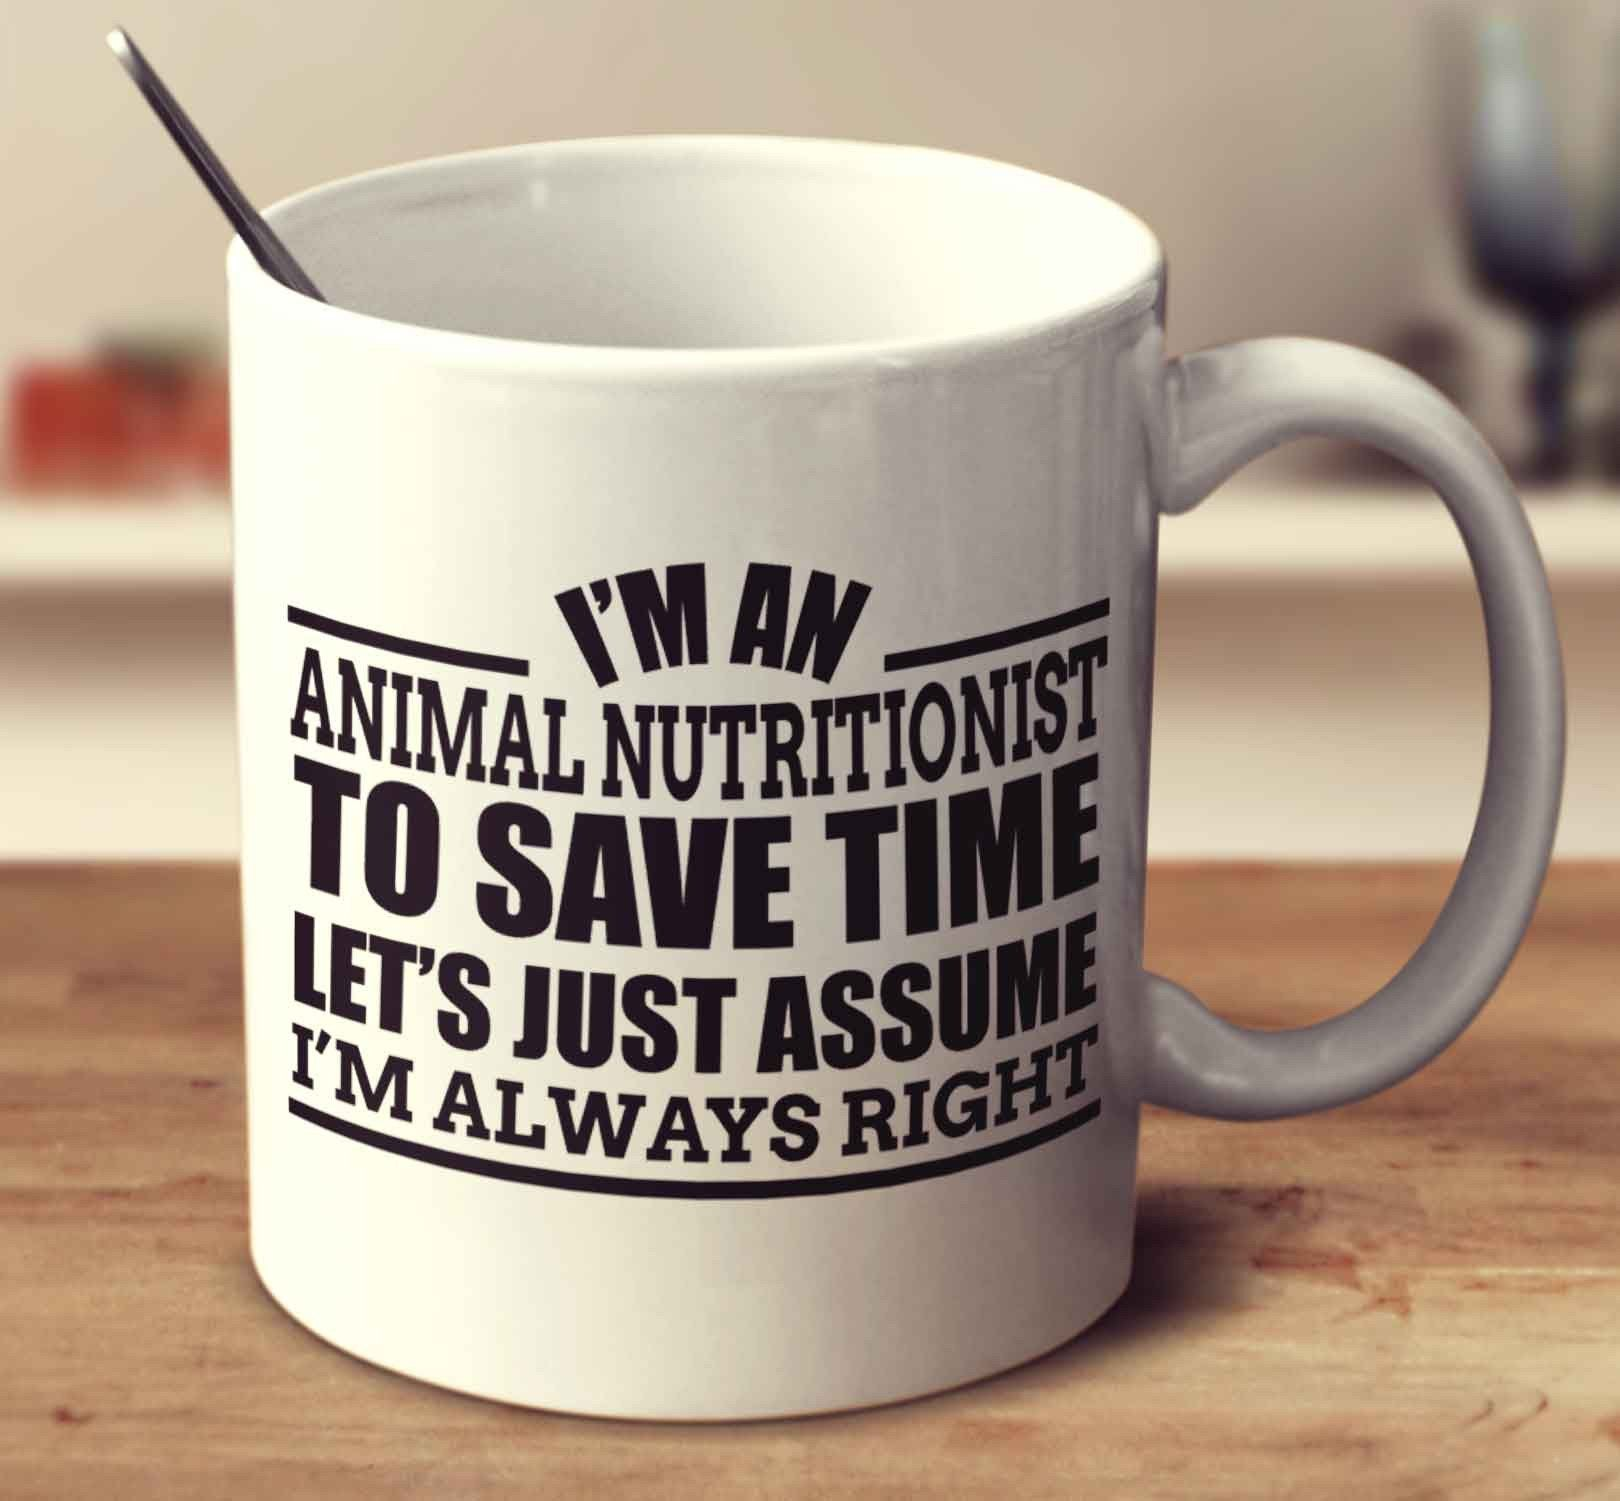 I'm An Animal Nutritionist To Save Time Let's Just Assume I'm Always Right